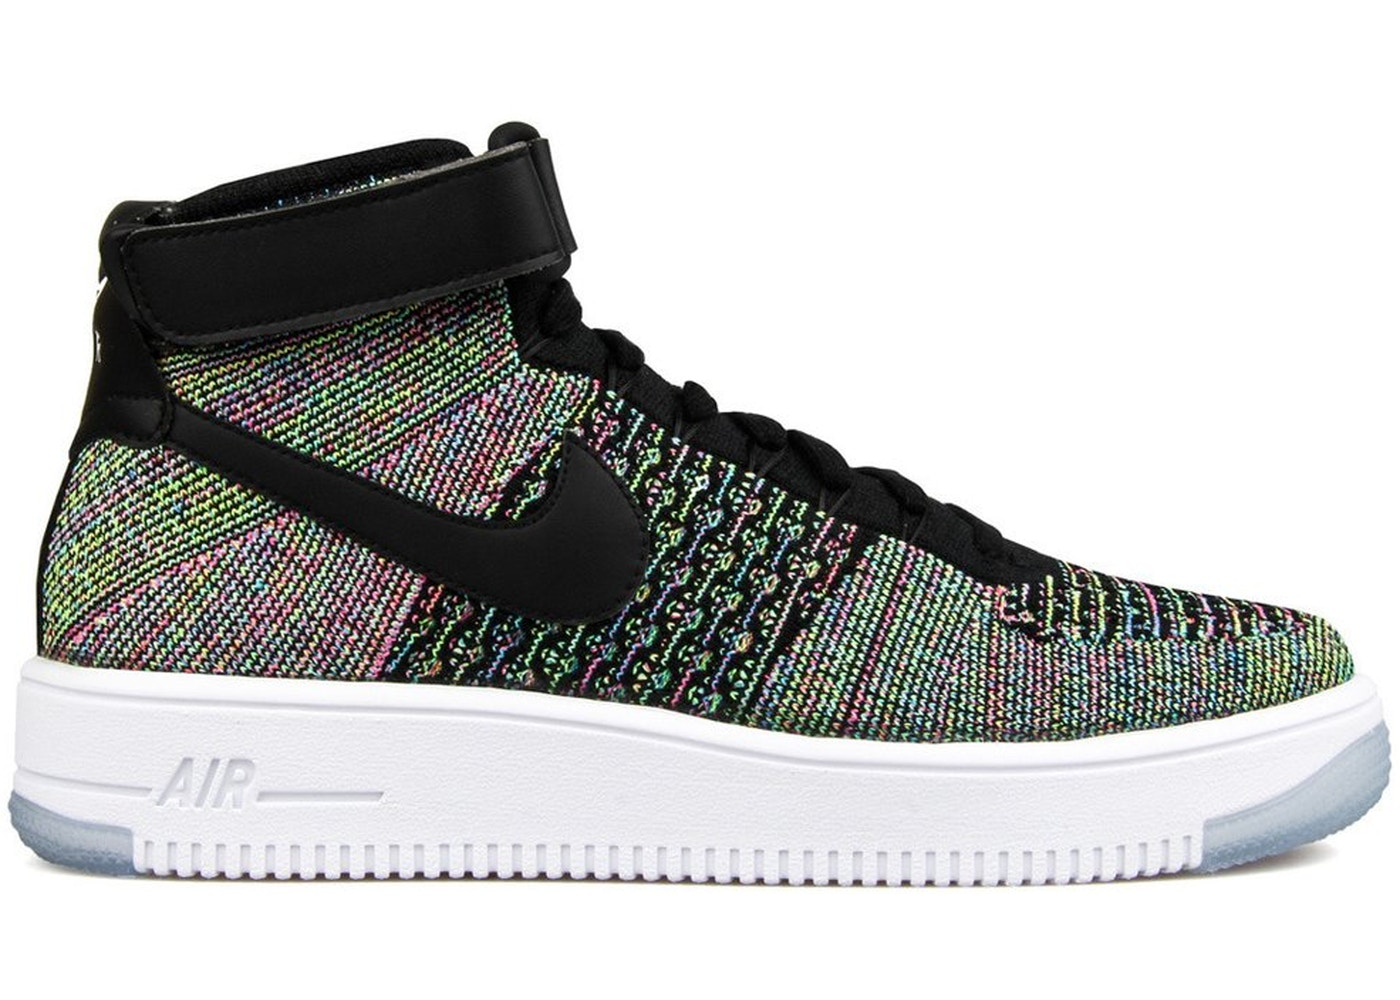 newest 72a2e 121ee Sell. or Ask. Size  17. View All Bids. Air Force 1 Ultra Flyknit Mid ...